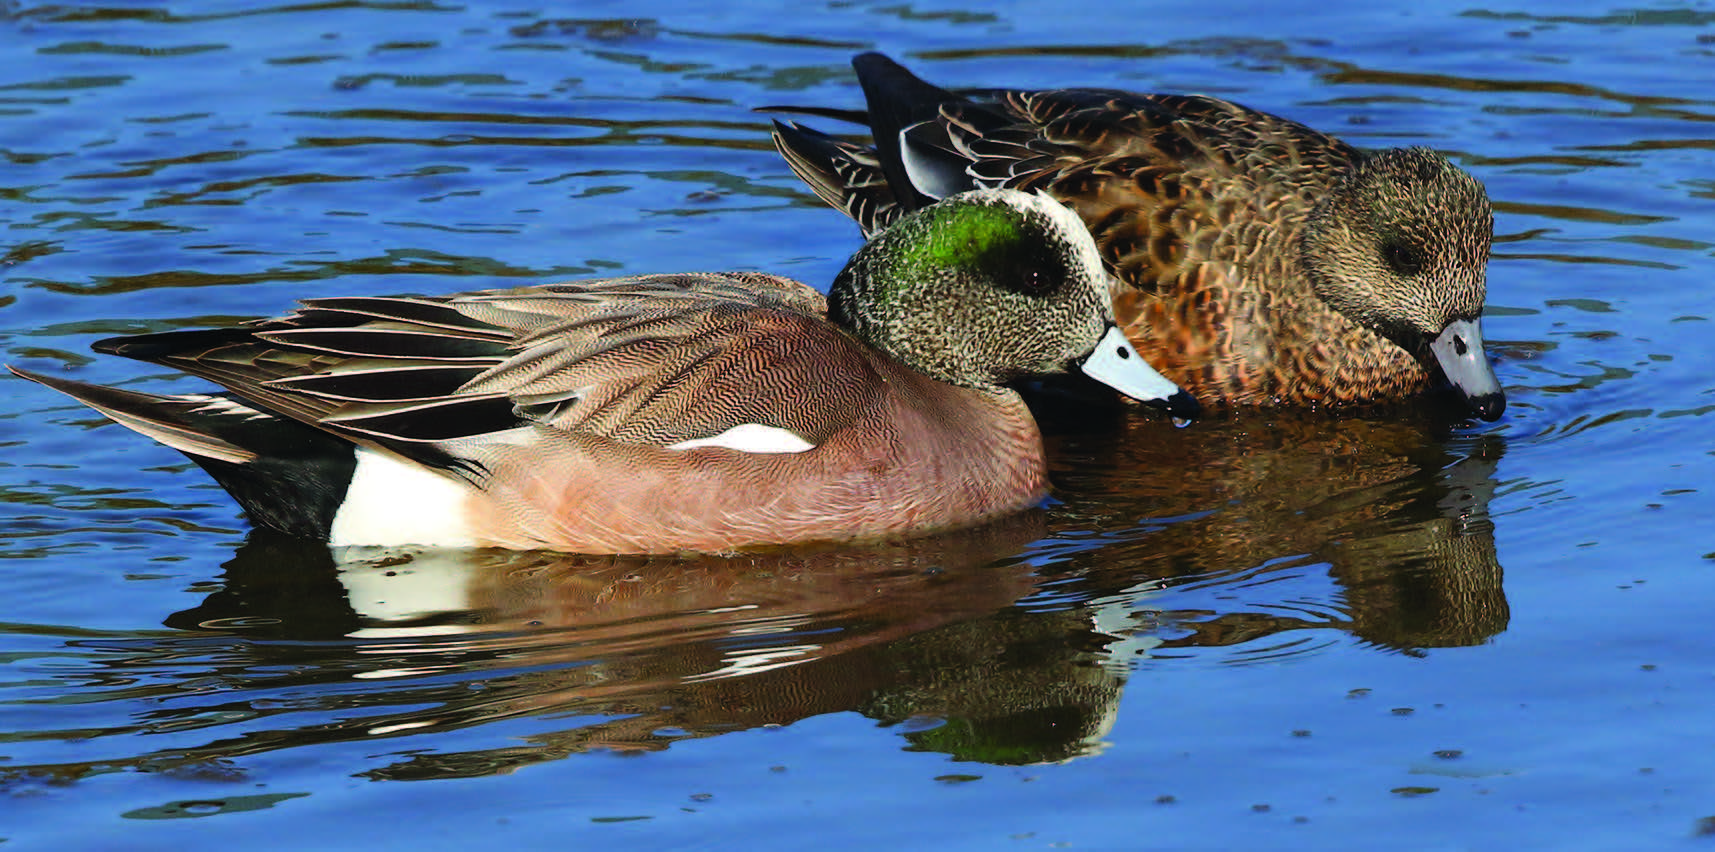 Rick Lewis When male and female American wigeons breed, they build nests as slight indentations in tall grass or under low shrubbery. They line the nests with grass and down pulled from the female's breast.